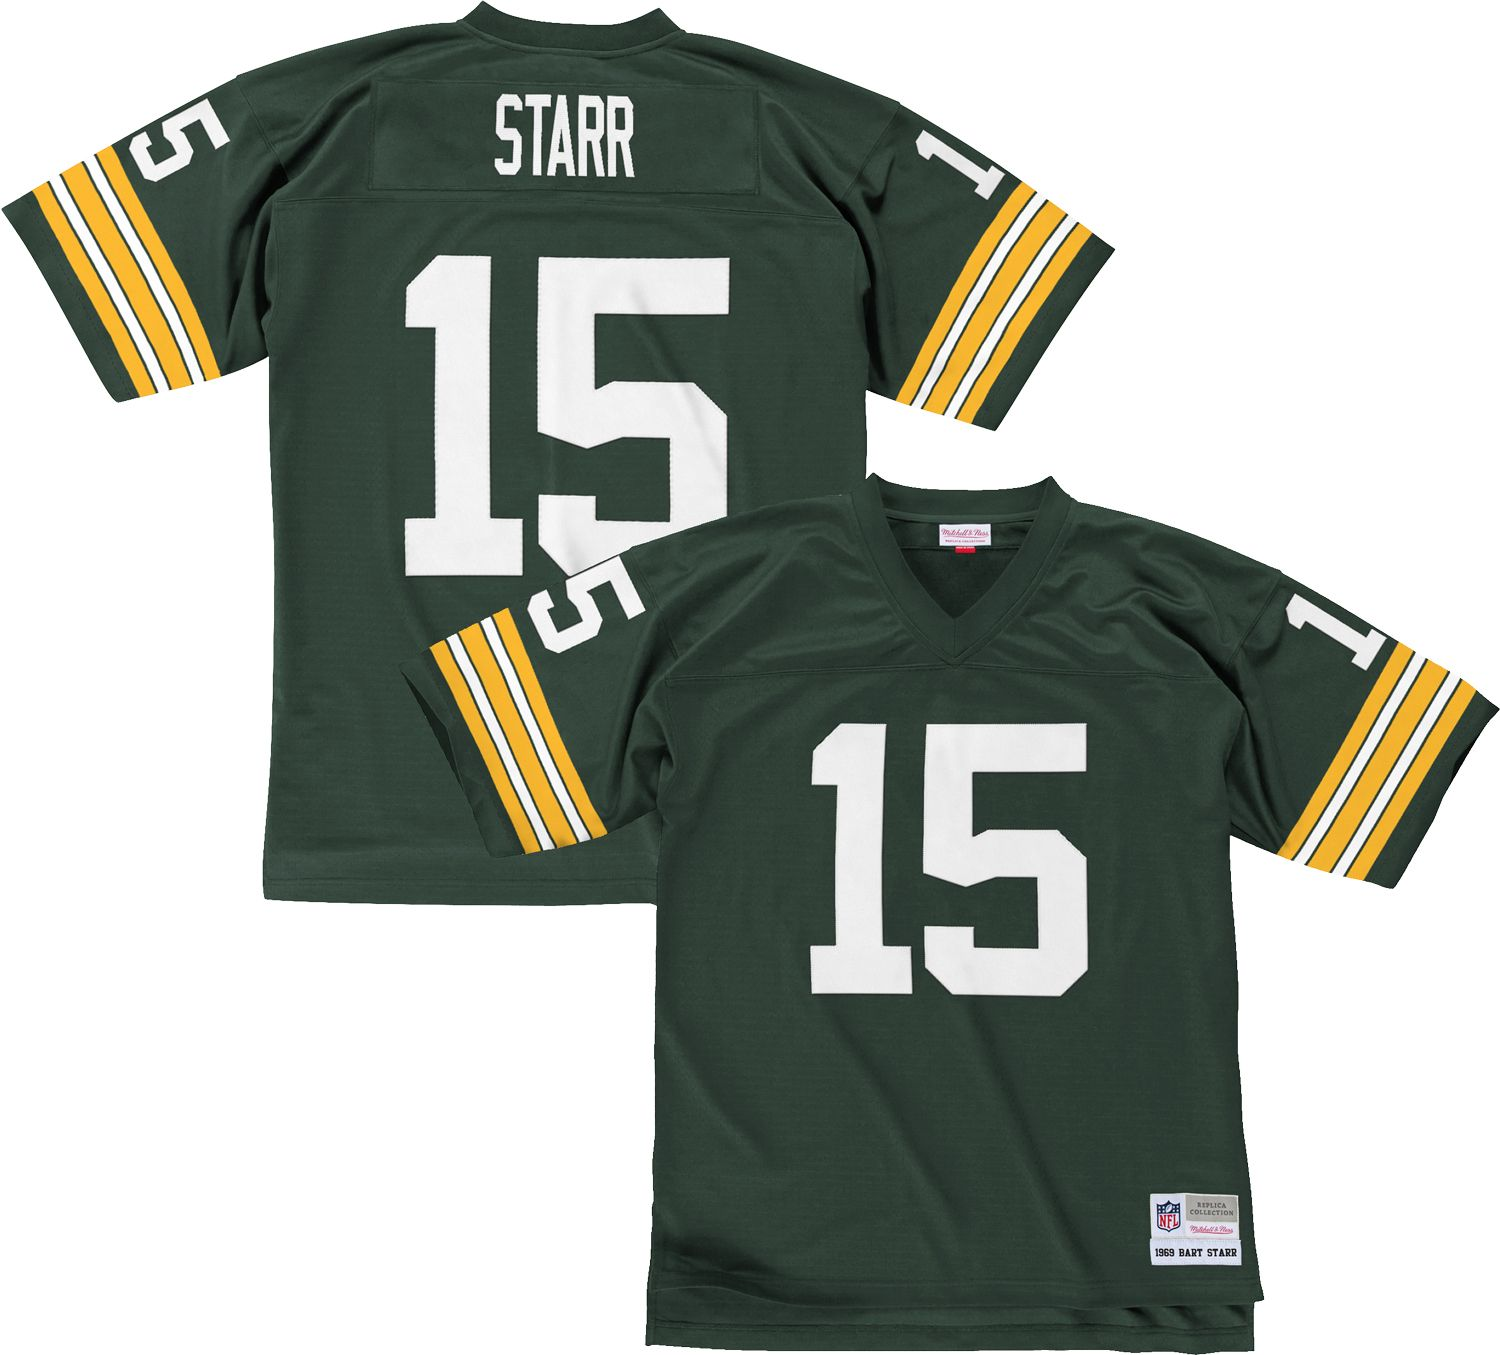 quality design f1962 41d00 bart starr jersey for sale